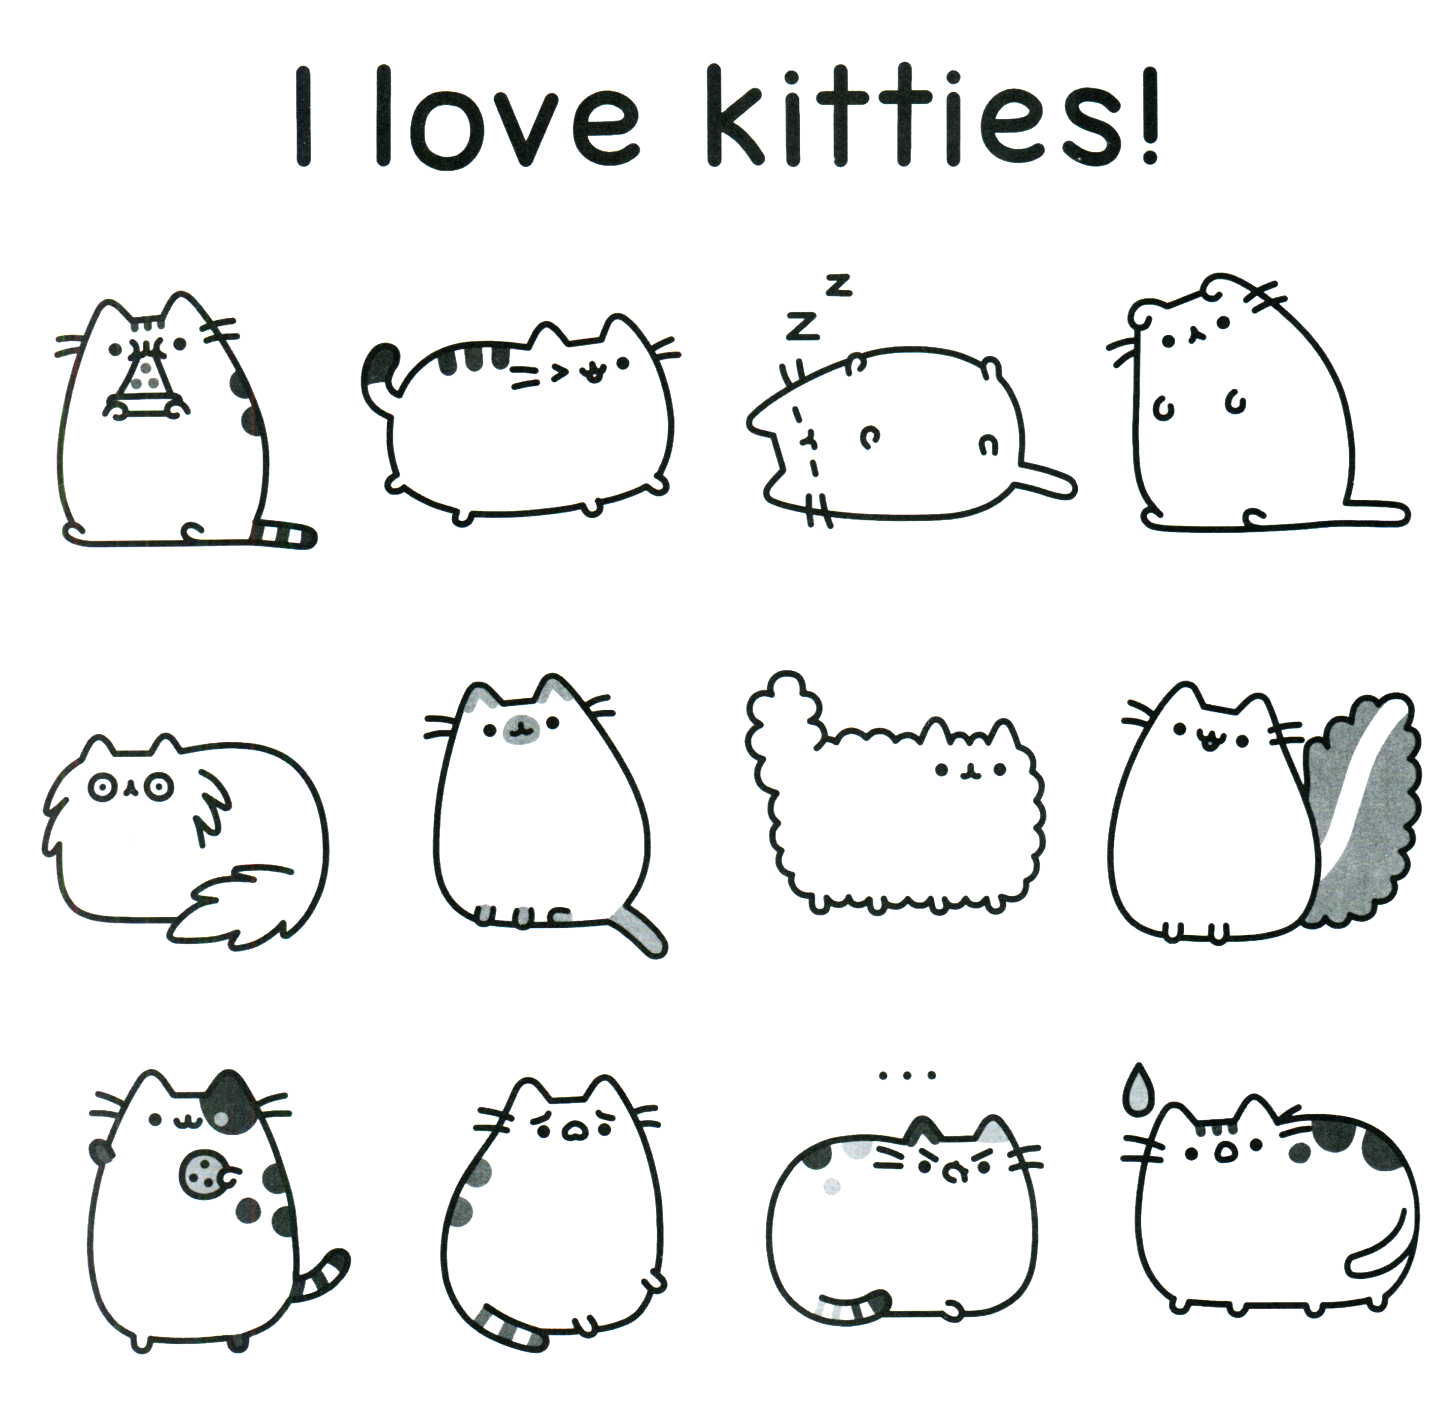 Pusheen Coloring Book Pusheen Pusheen the Cat | Gatos + gatos ...